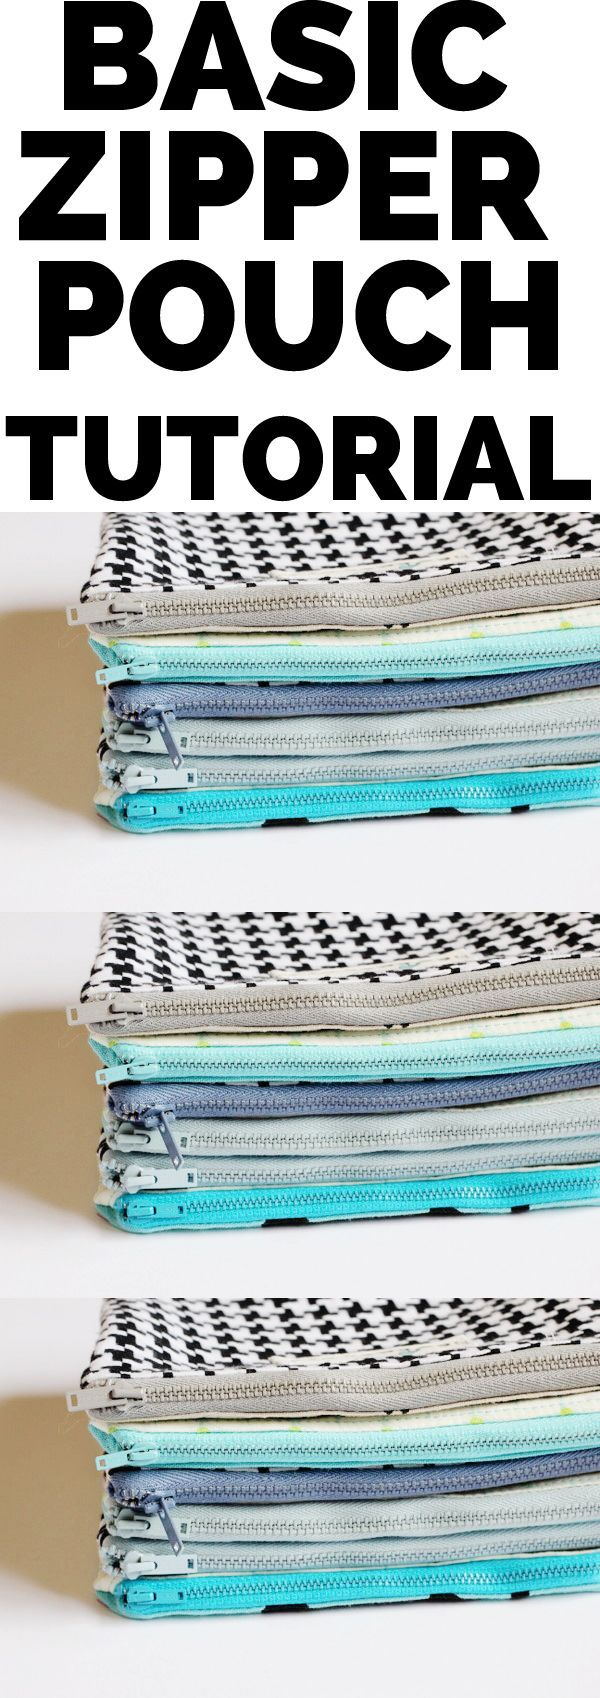 The Basic Zipper Pouch - Tutorial